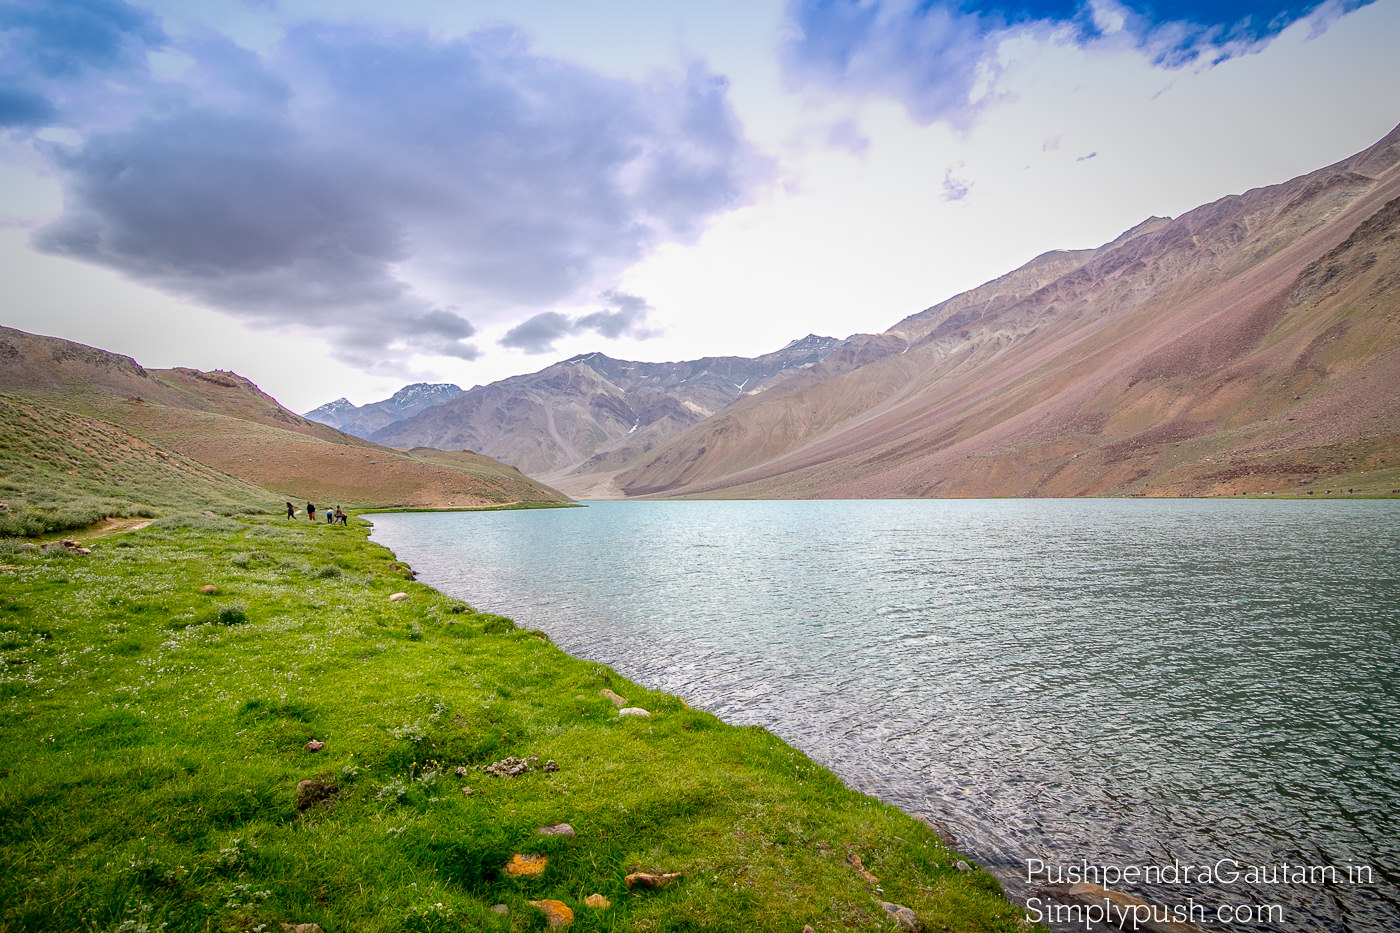 chandratal-lake-spiti-valley-pics-kaza-spiti-valley-chandratal